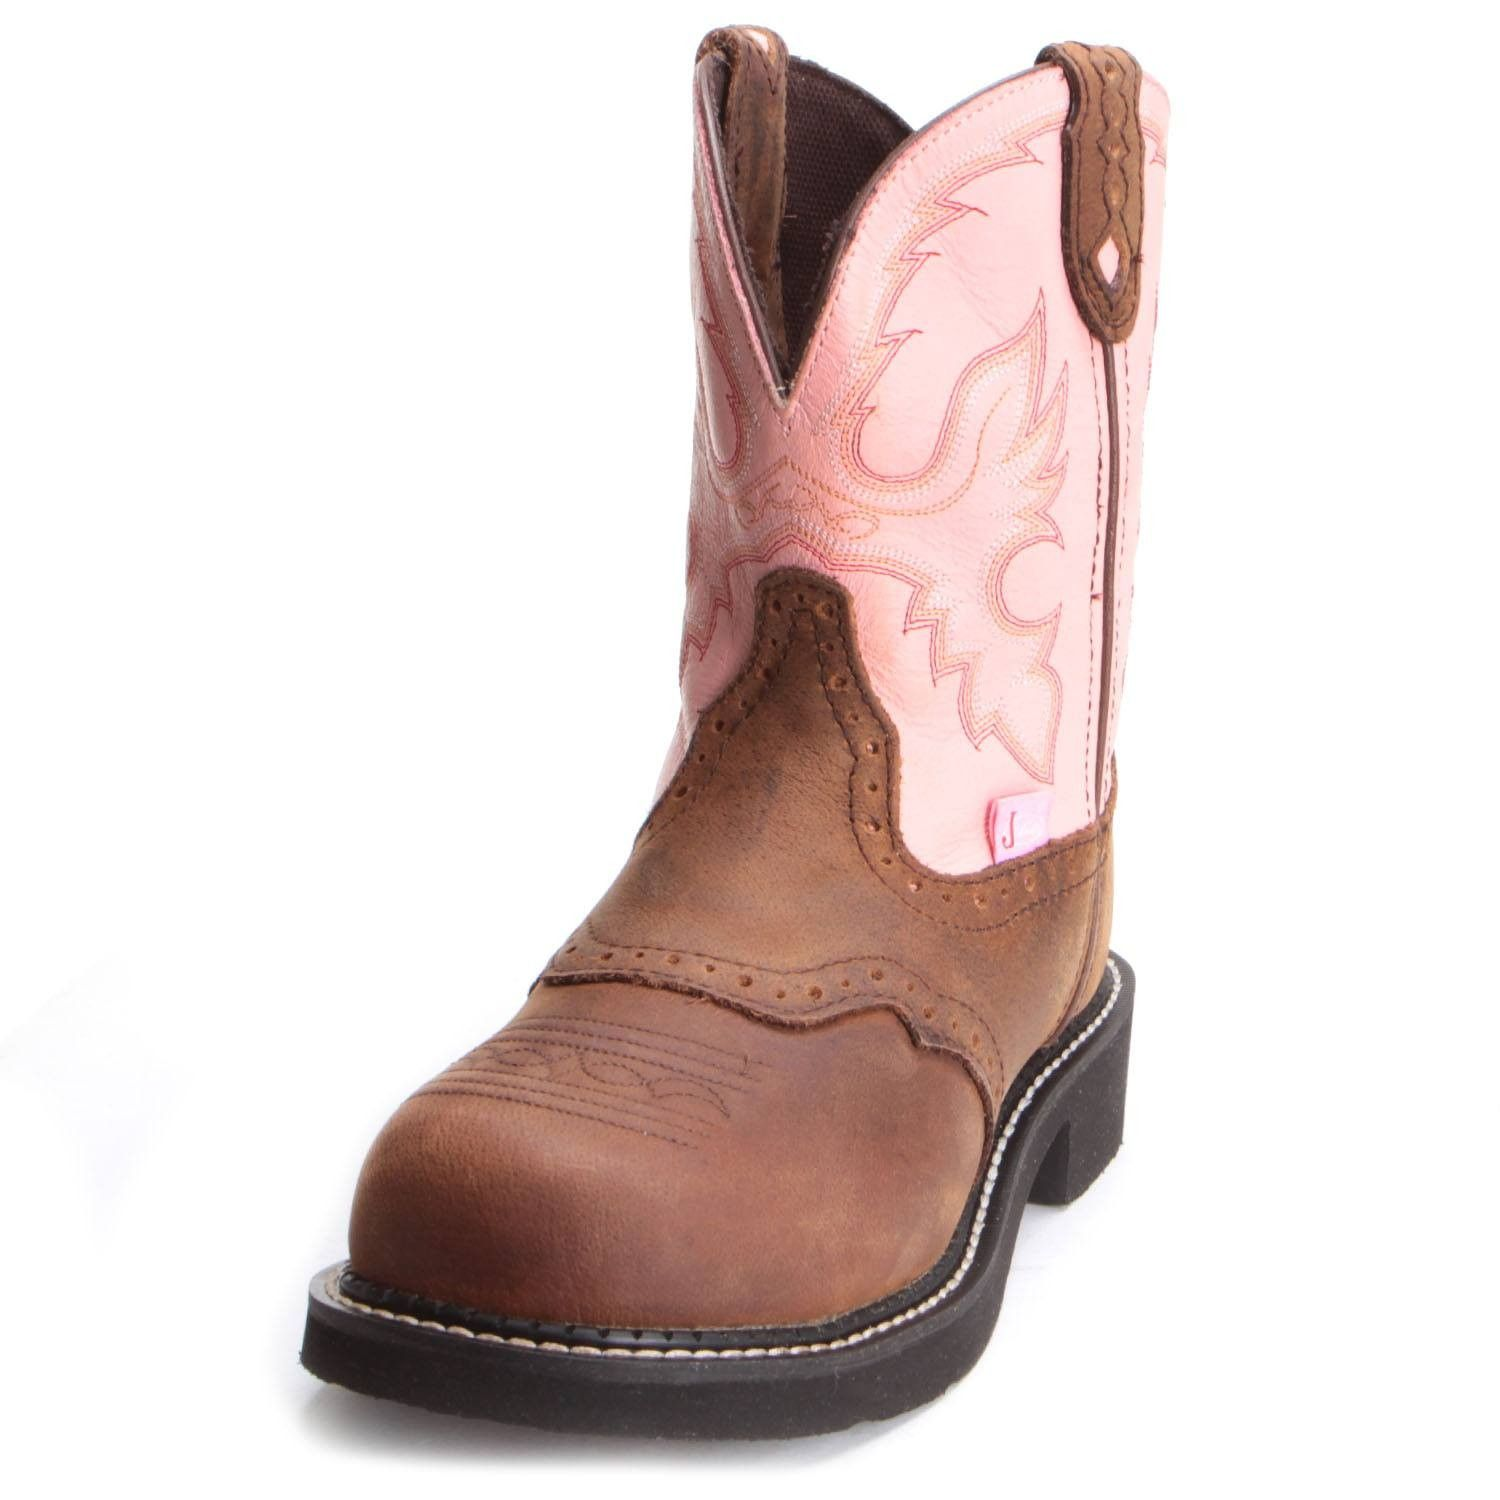 9e6268436ef Justin Womens Wanette Steel Toe Work Boots Pink | Cowboy Boots for ...